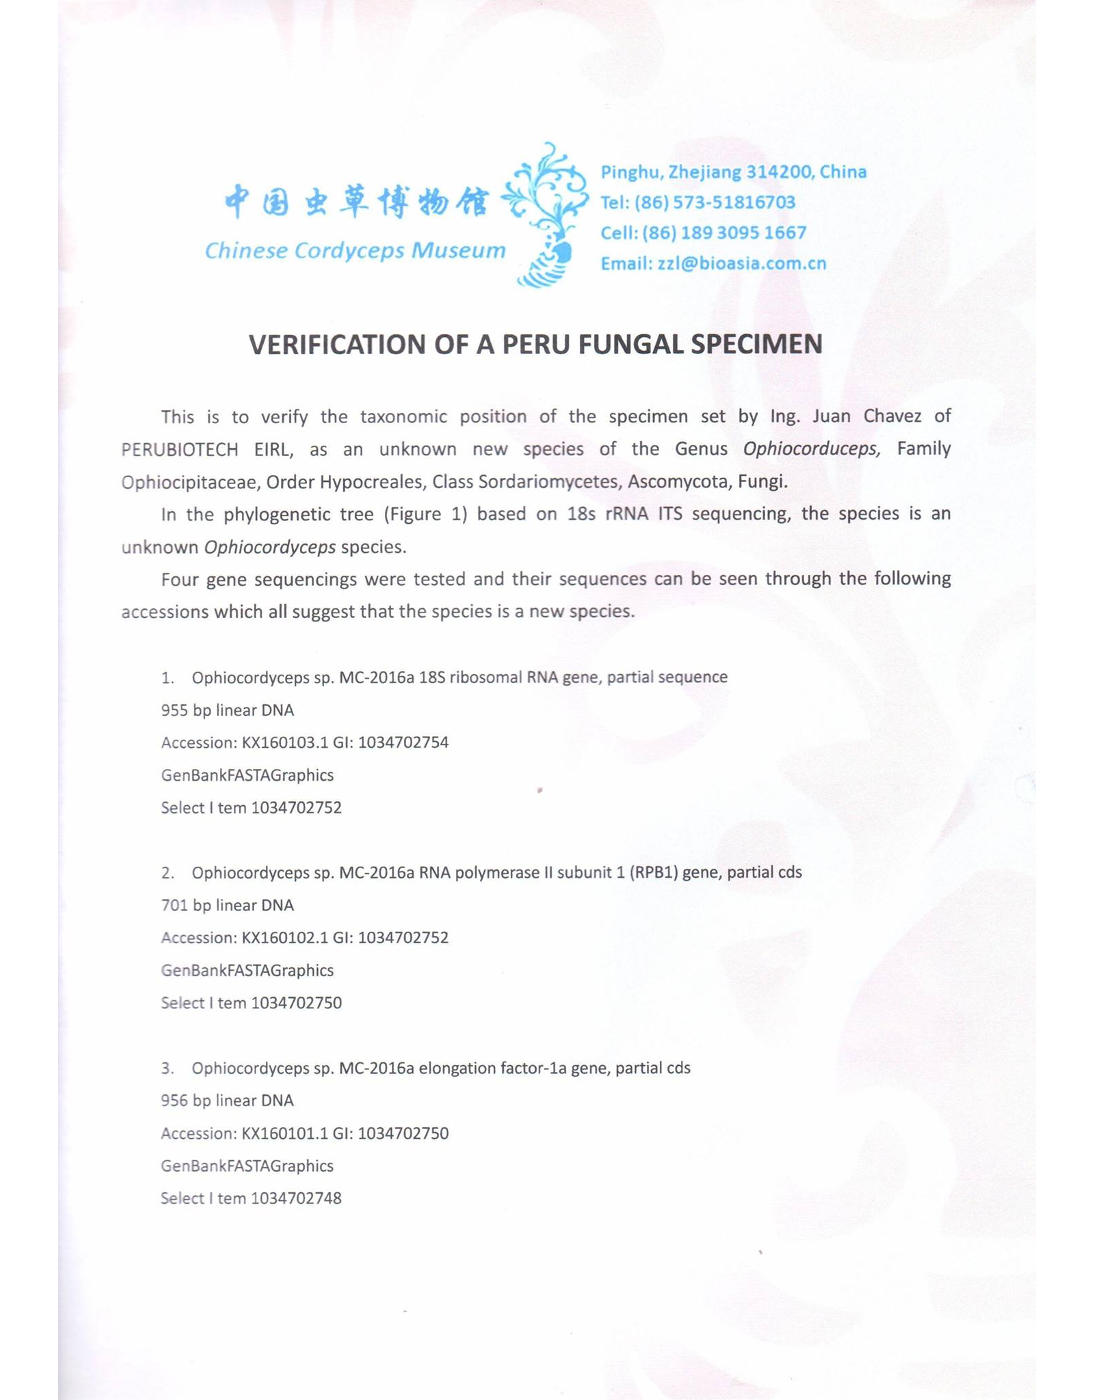 Verification of a Perú Fungal Specimen (page 1)